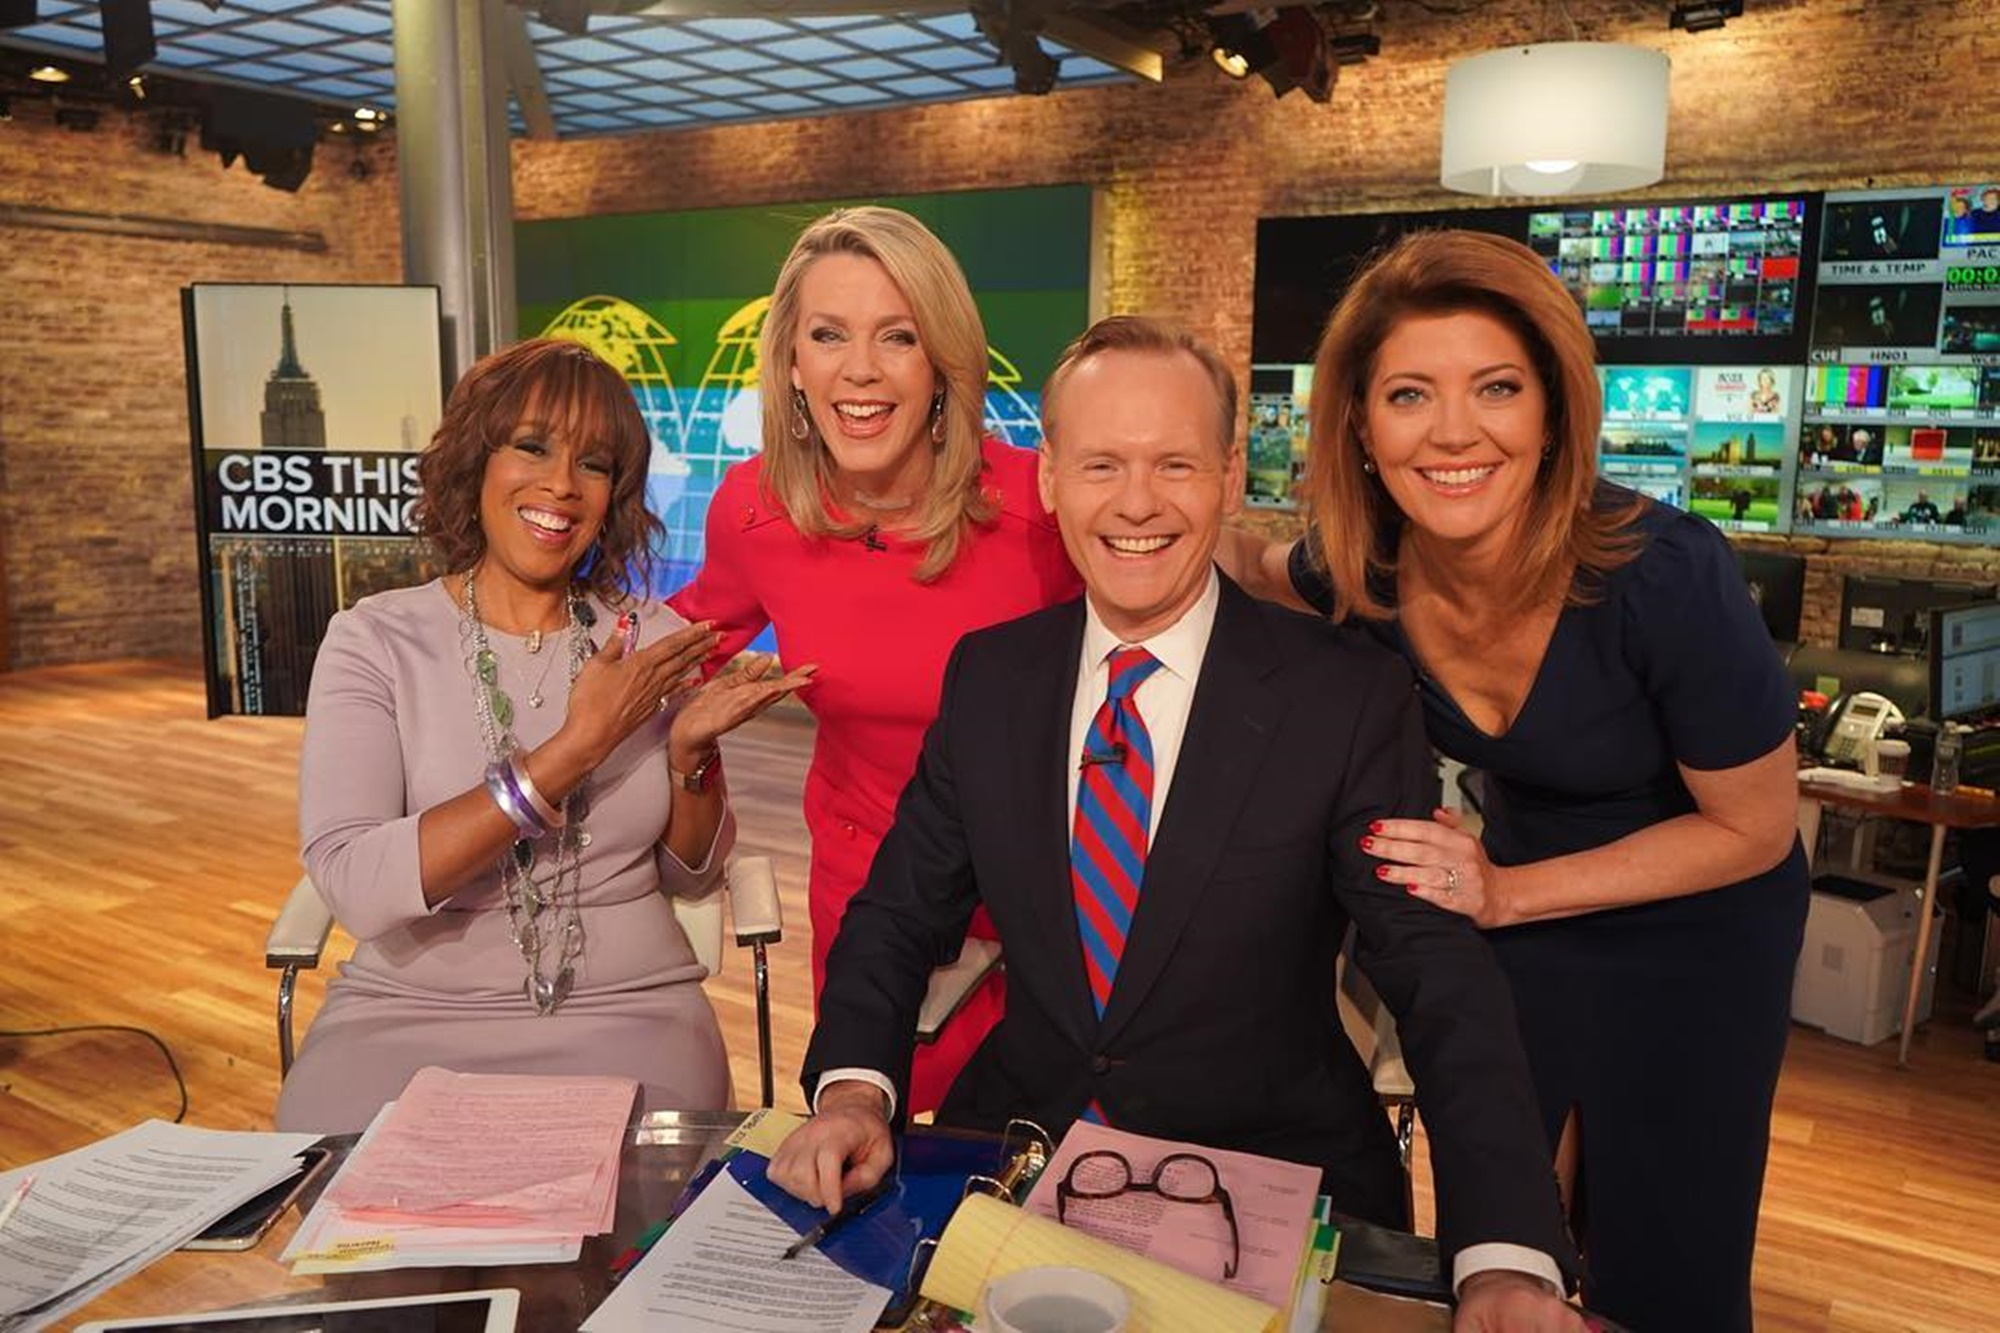 CBS This Morning Gayle King Deborah Norville John Dickerson Norah O'Donnell